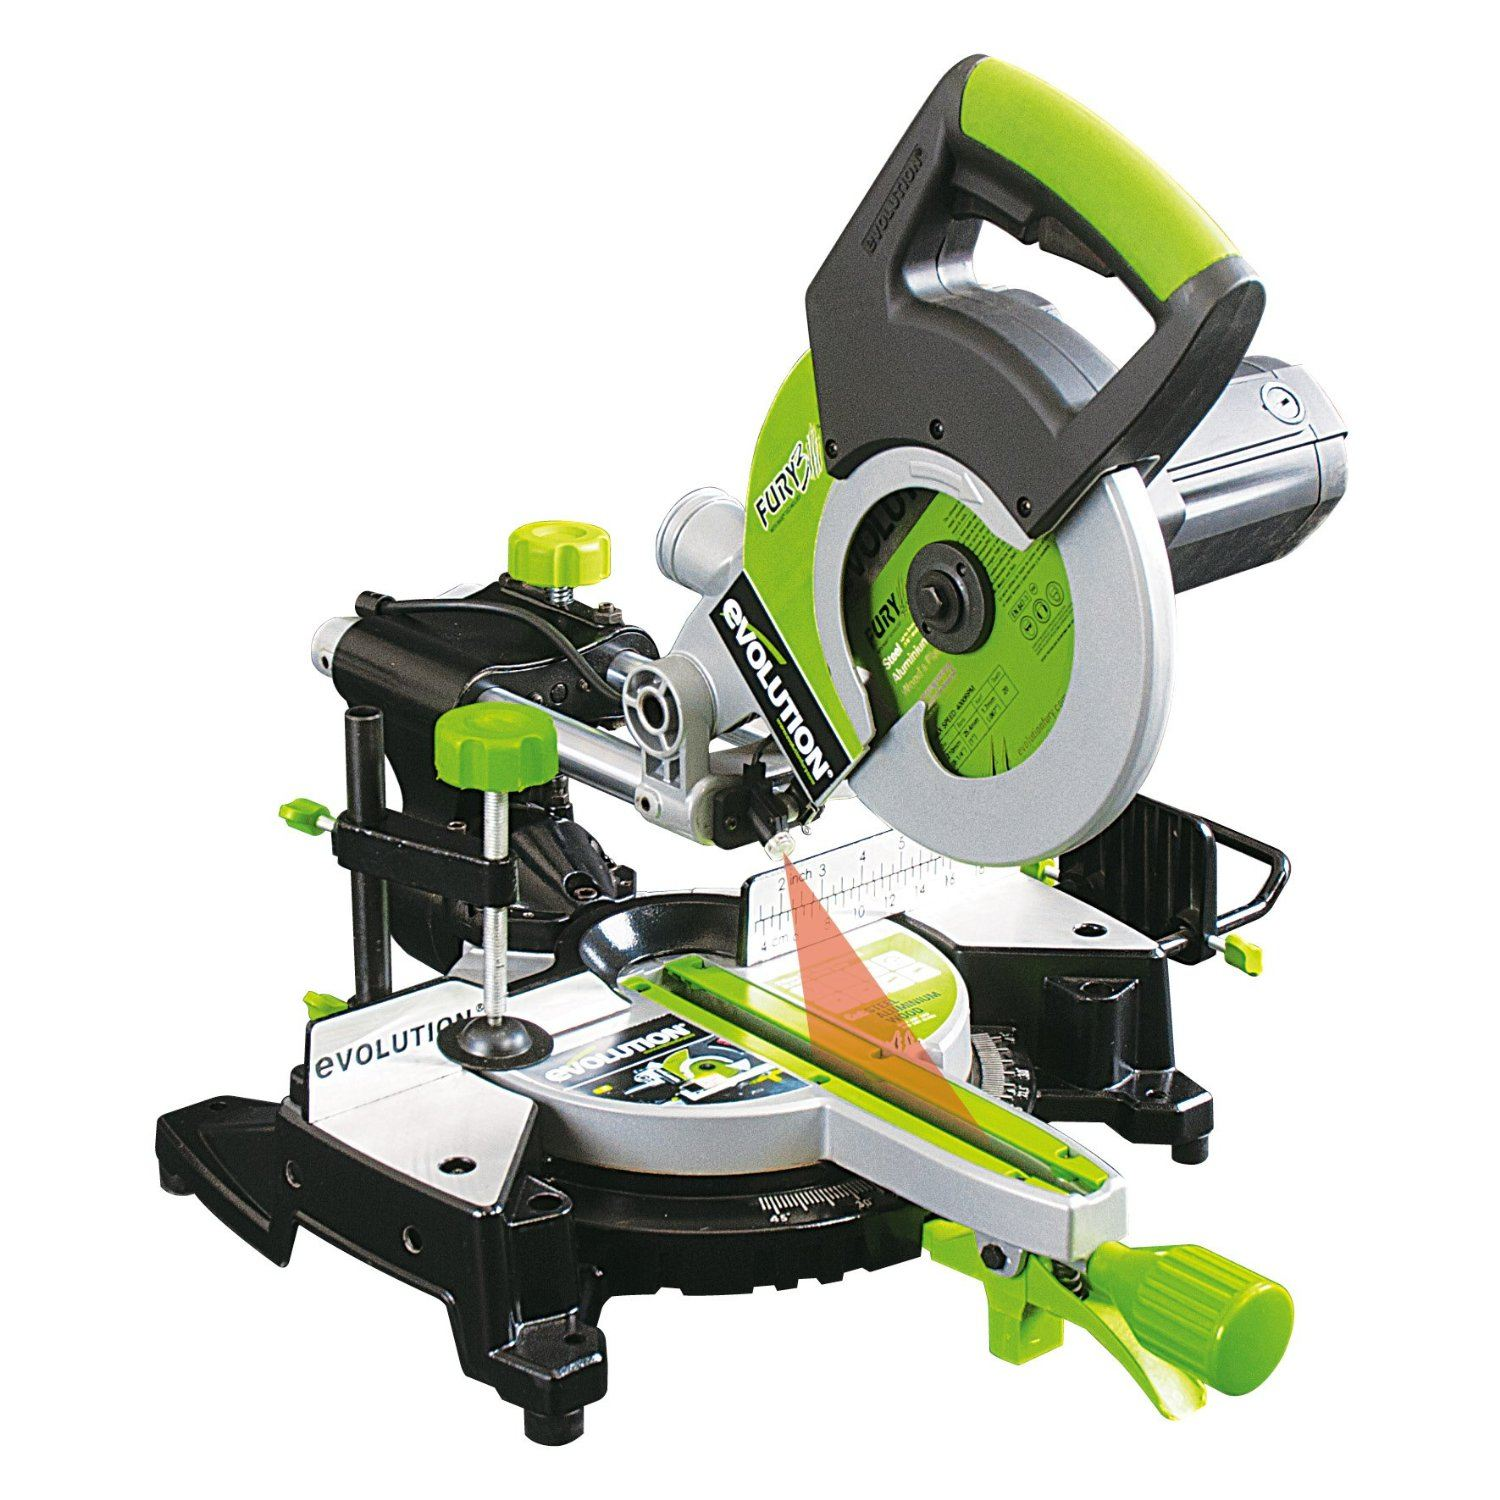 Evolution Fury3 Multipurpose Sliding Mitre Saw 210 mm - 230 V